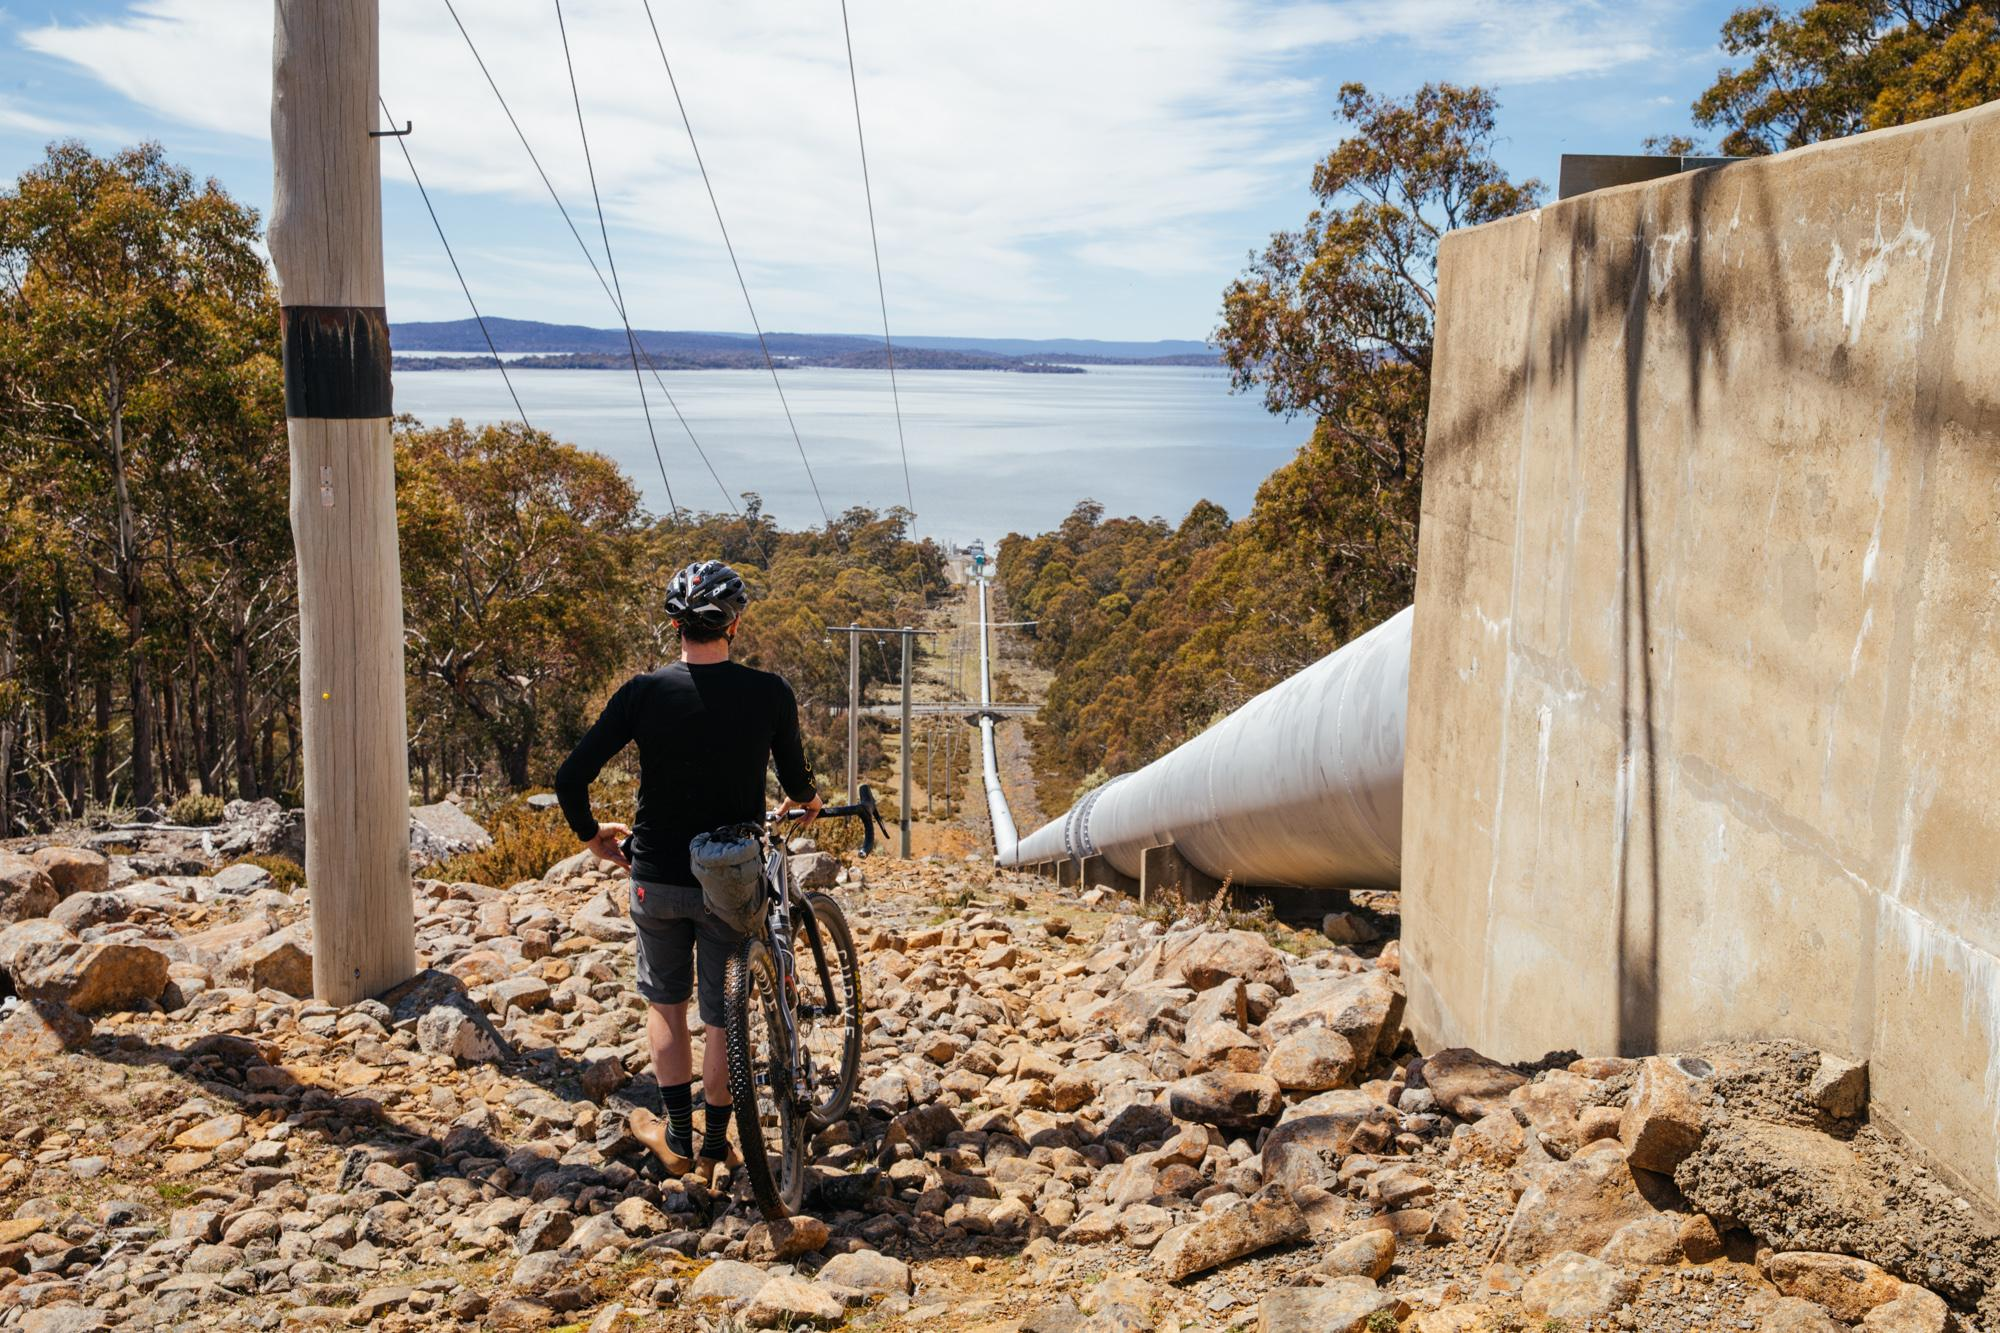 Tassie relies on hydro power to keep their lights on.